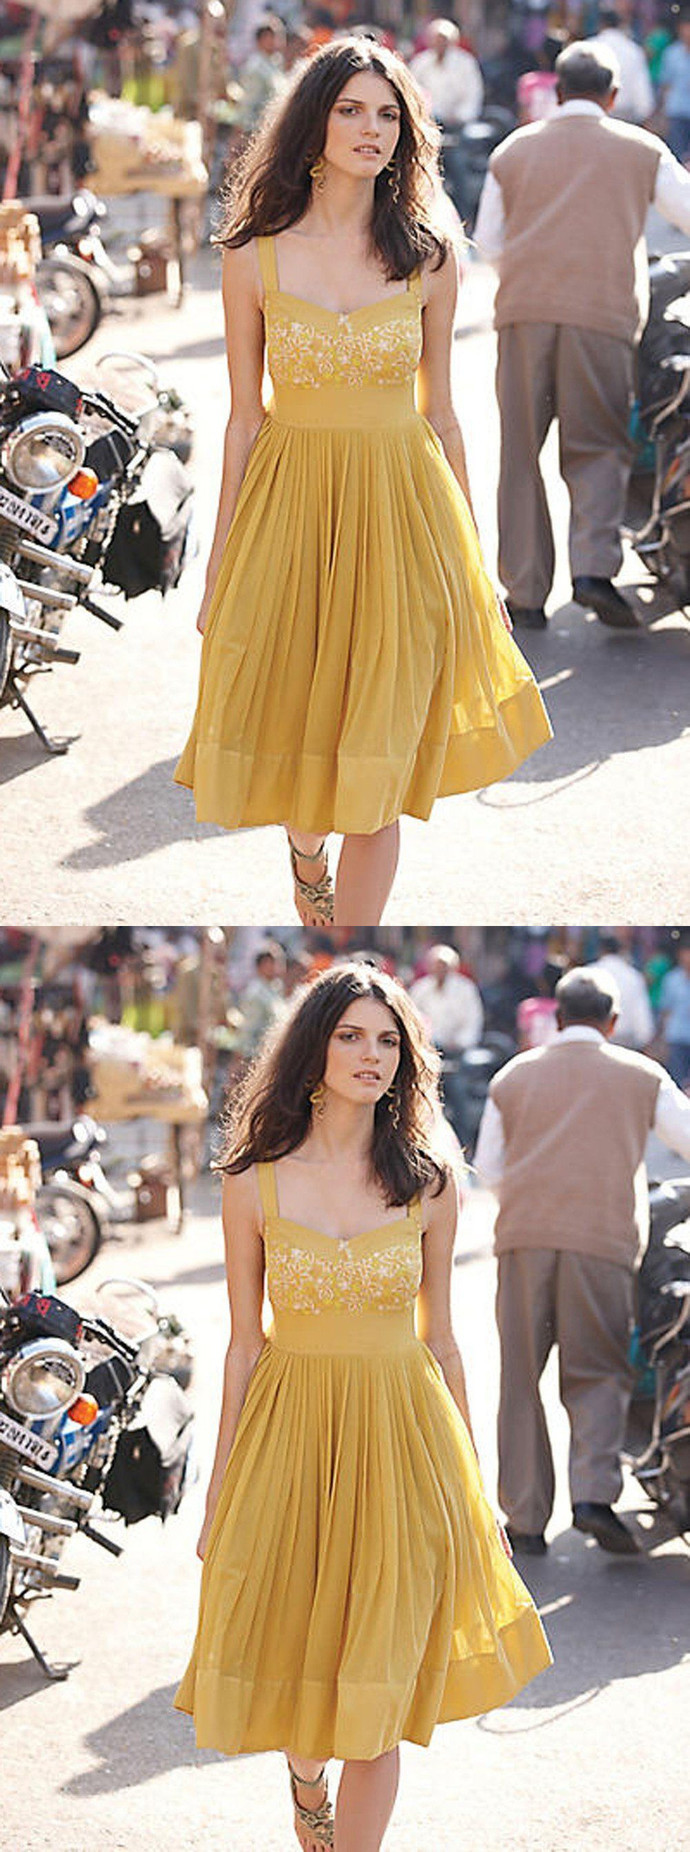 Yellow Homecoming Dress, Chiffon Homecoming Dress, Knee Length Homecoming Dress